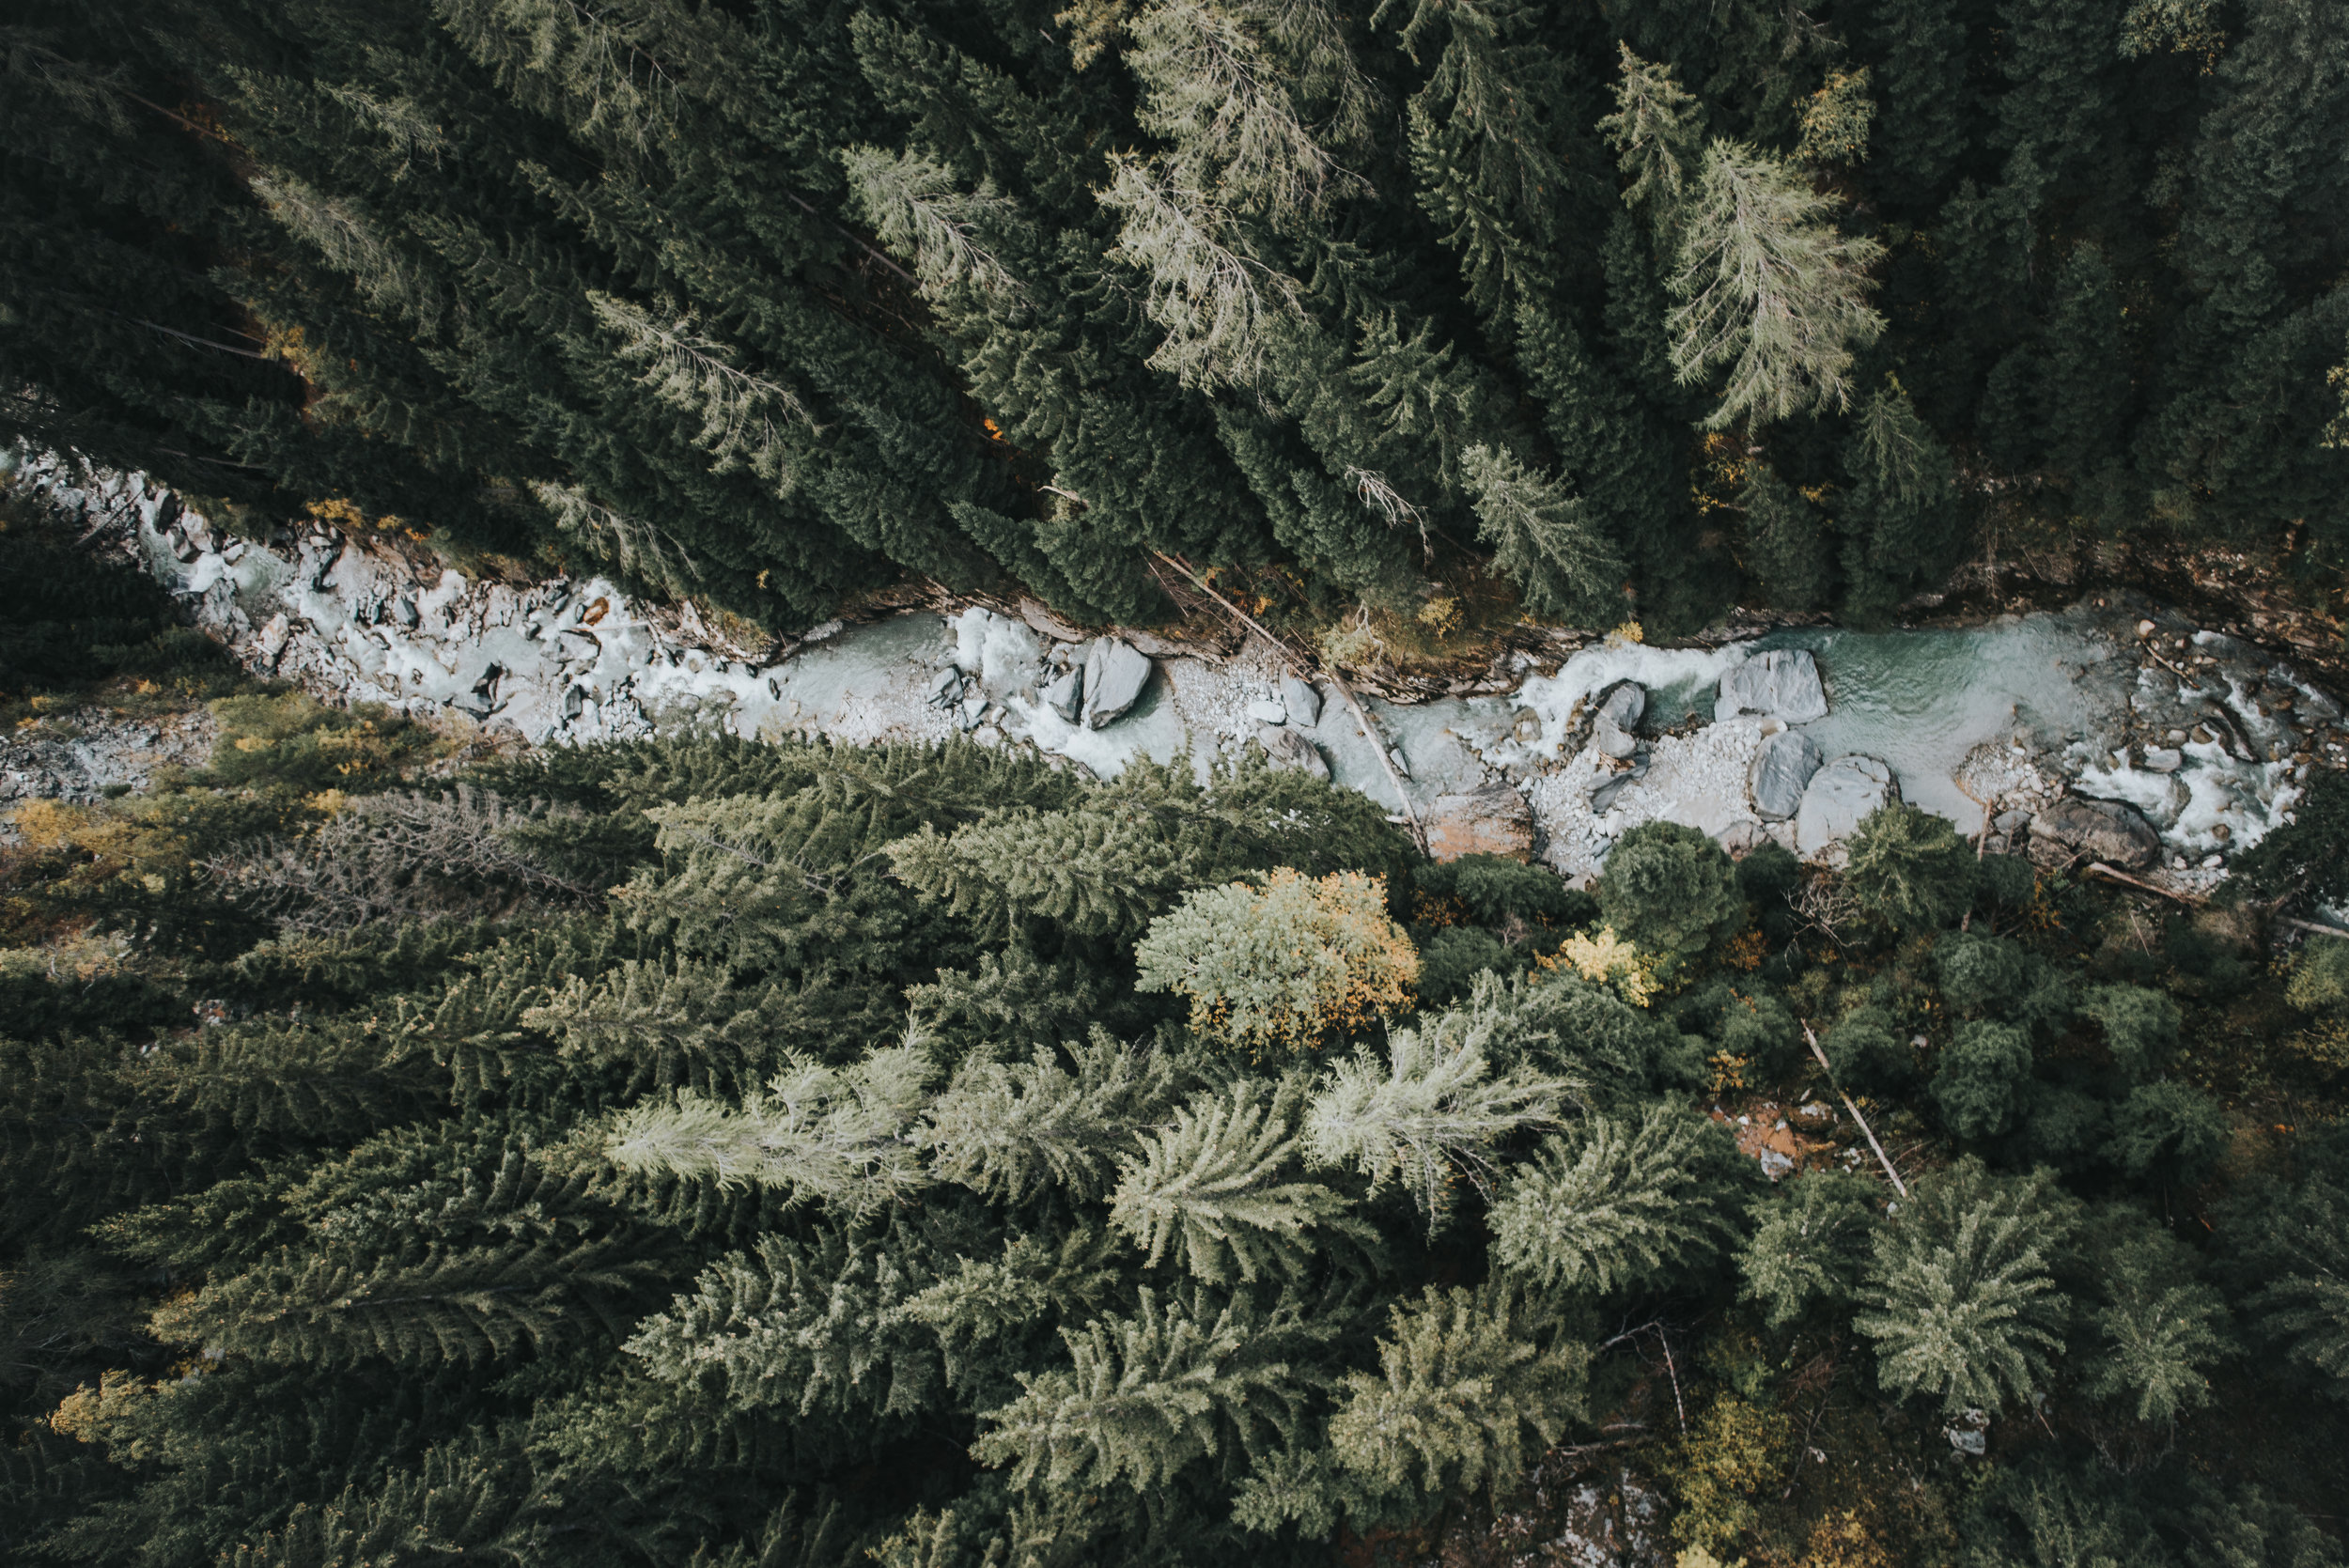 bossfight-free-high-stock-photos-river-water-trees-forest.jpg